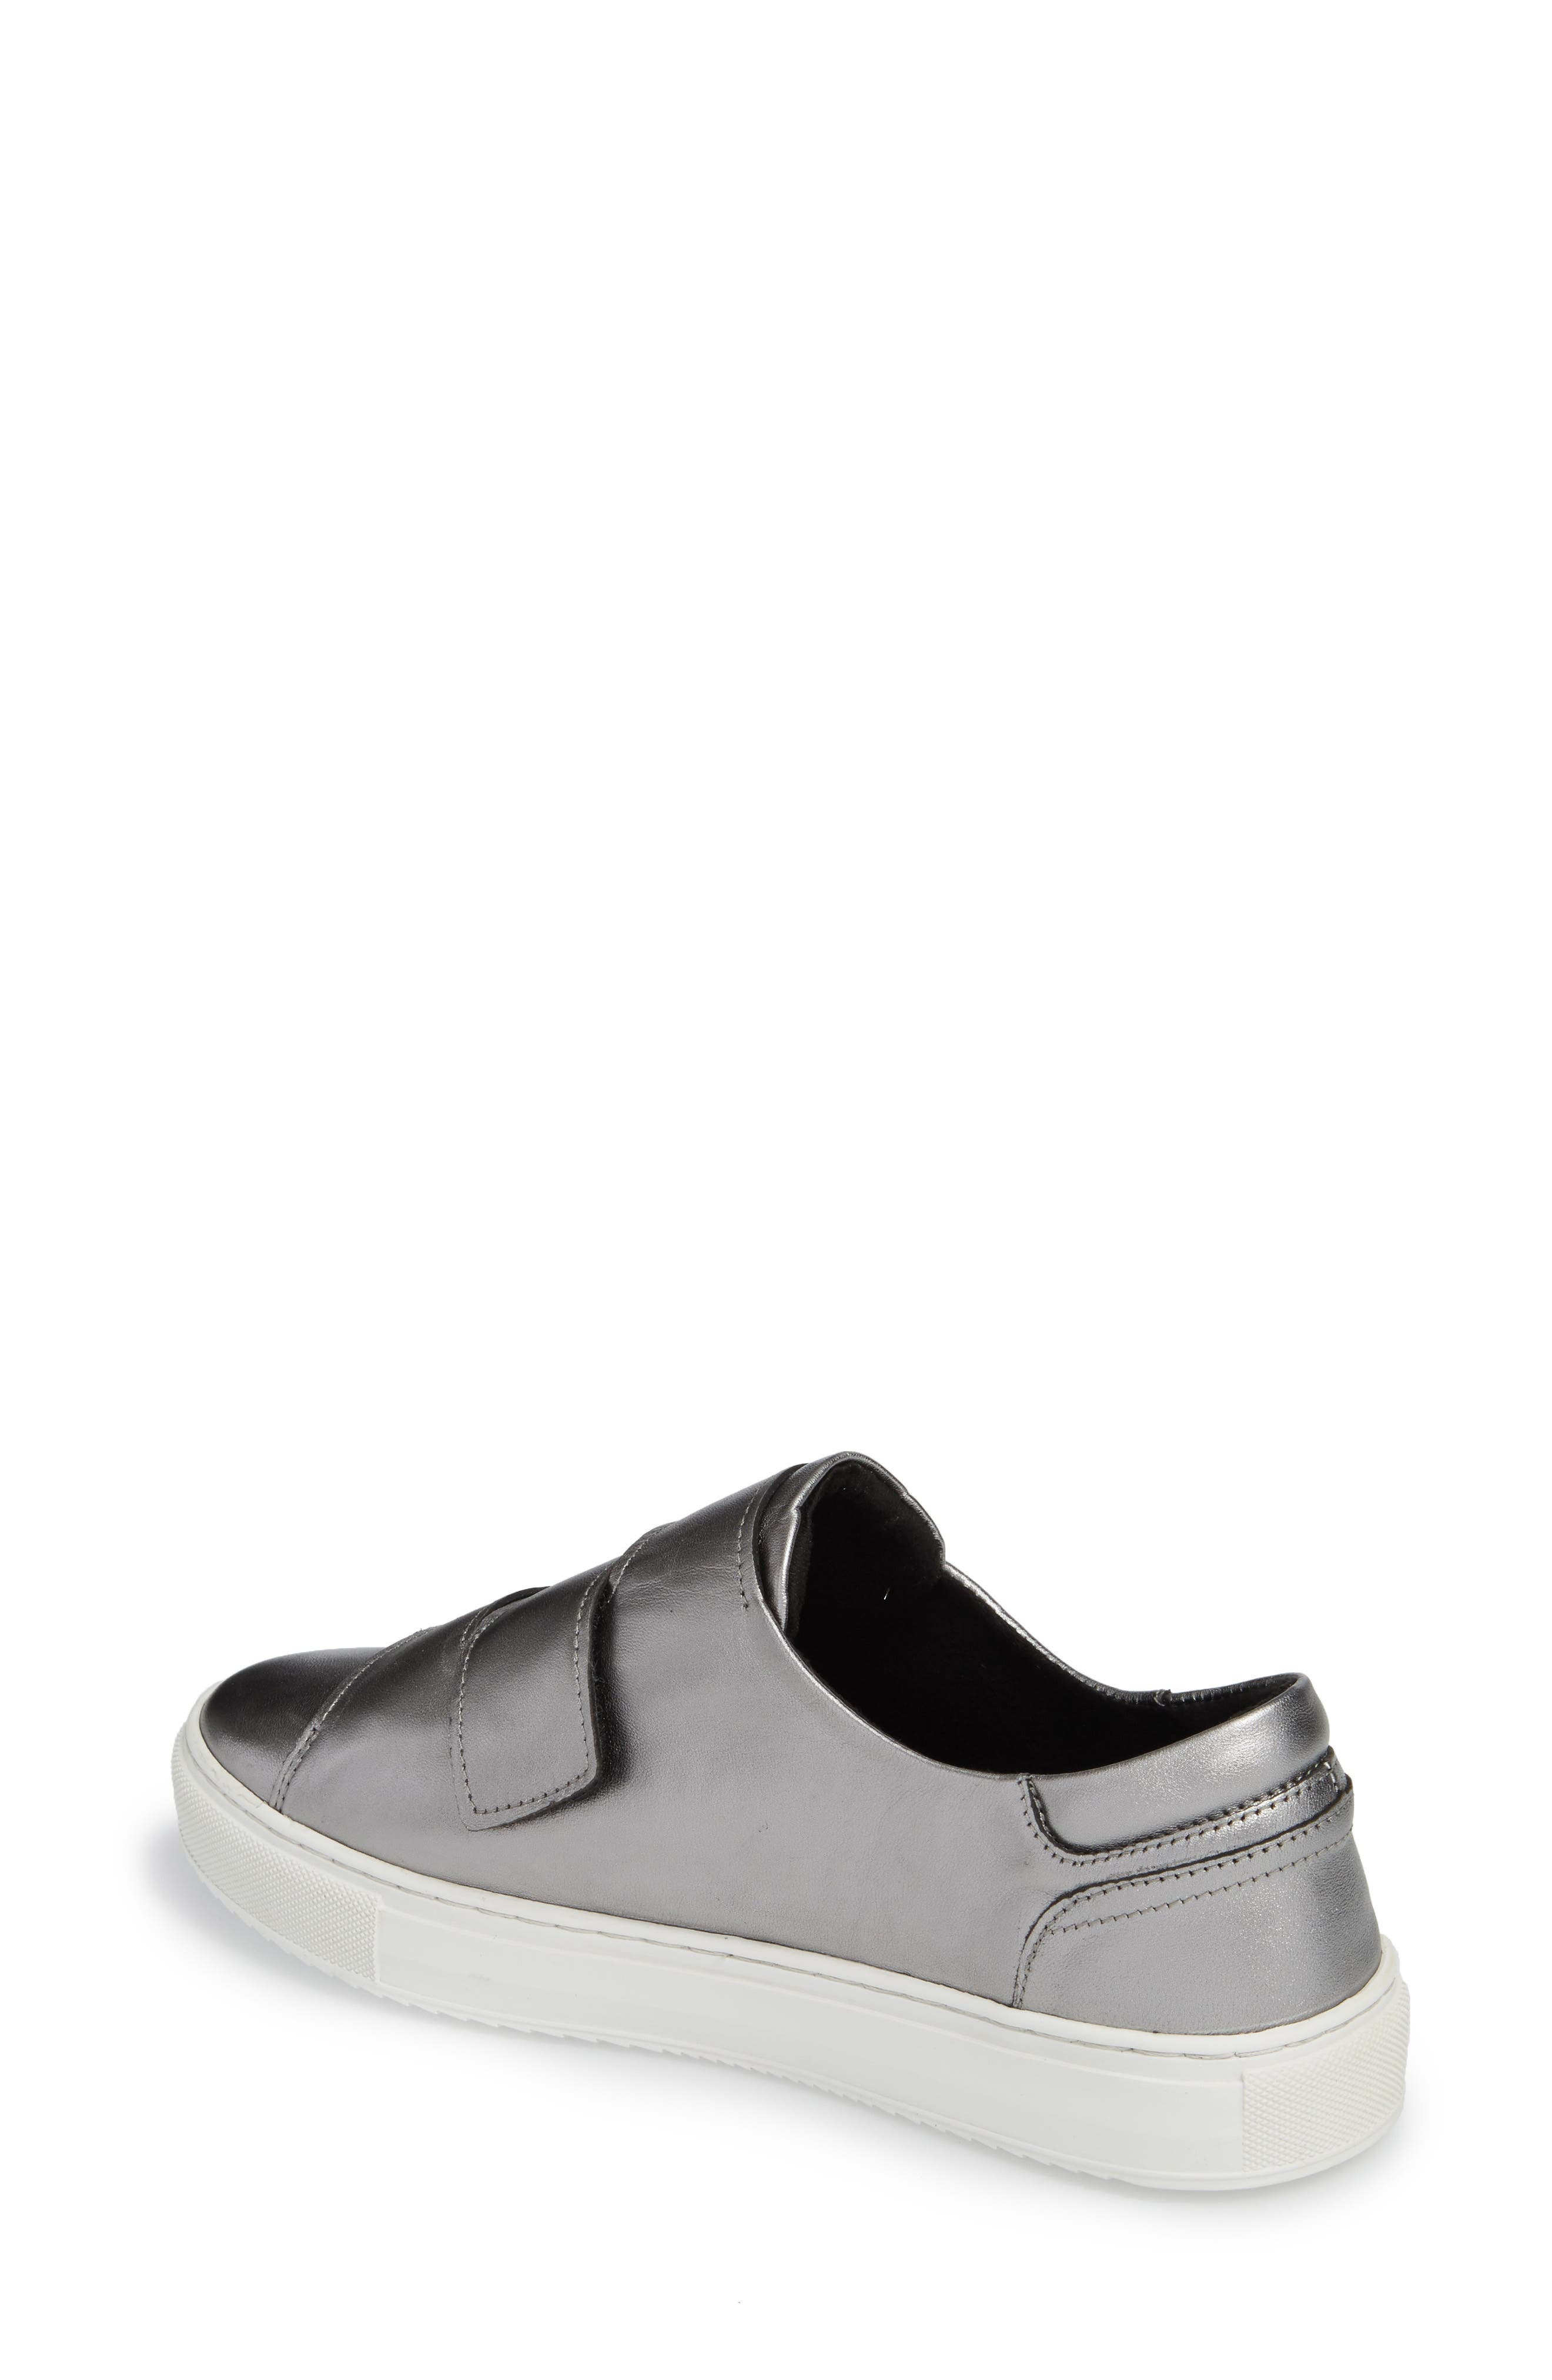 Rollover Alternating Strap Sneaker,                             Alternate thumbnail 2, color,                             Pewter Leather